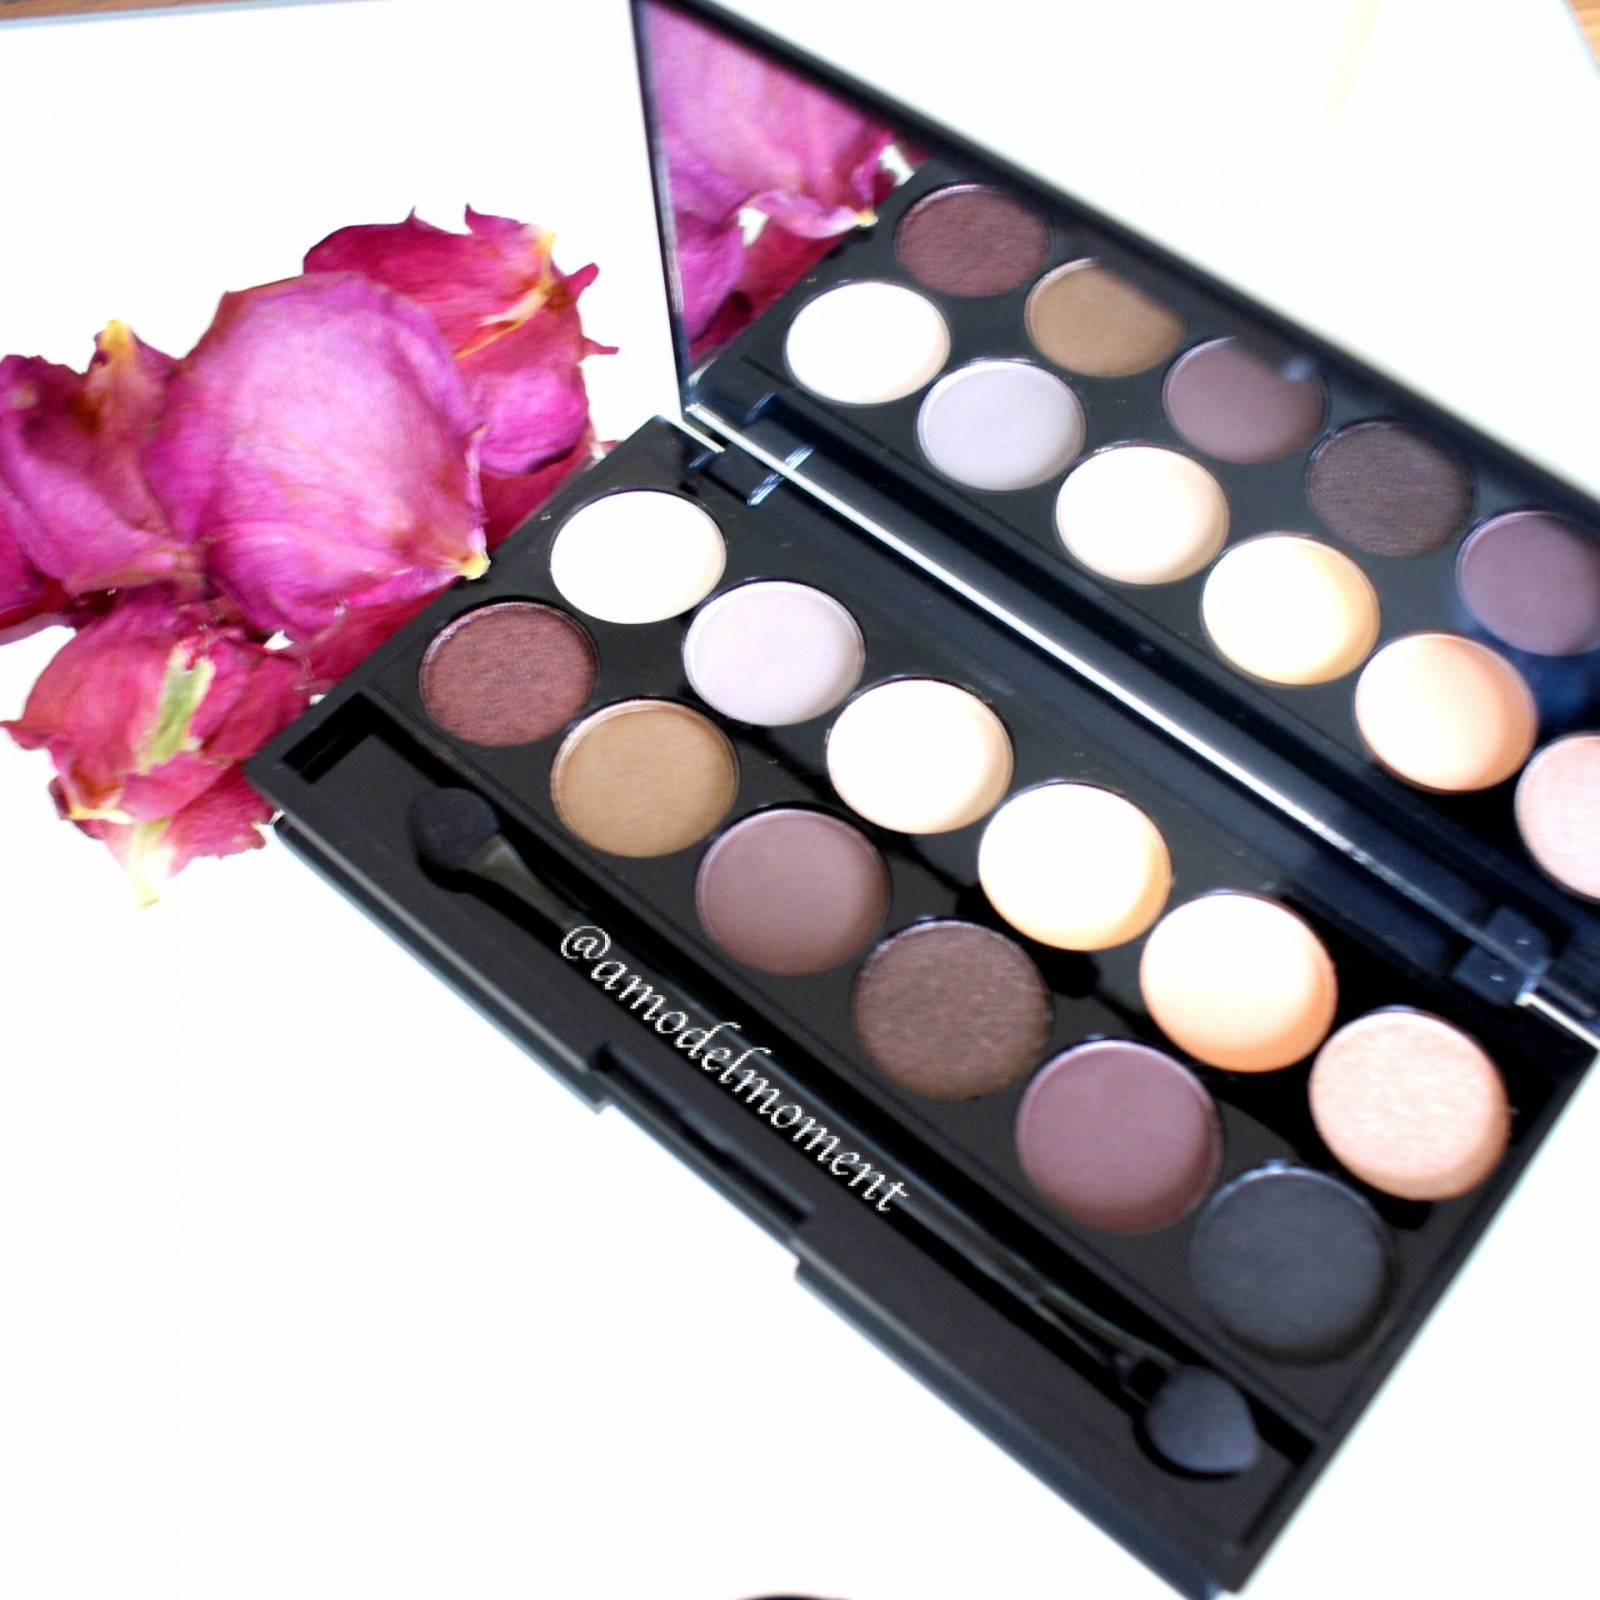 Sleek Eye Palette Review